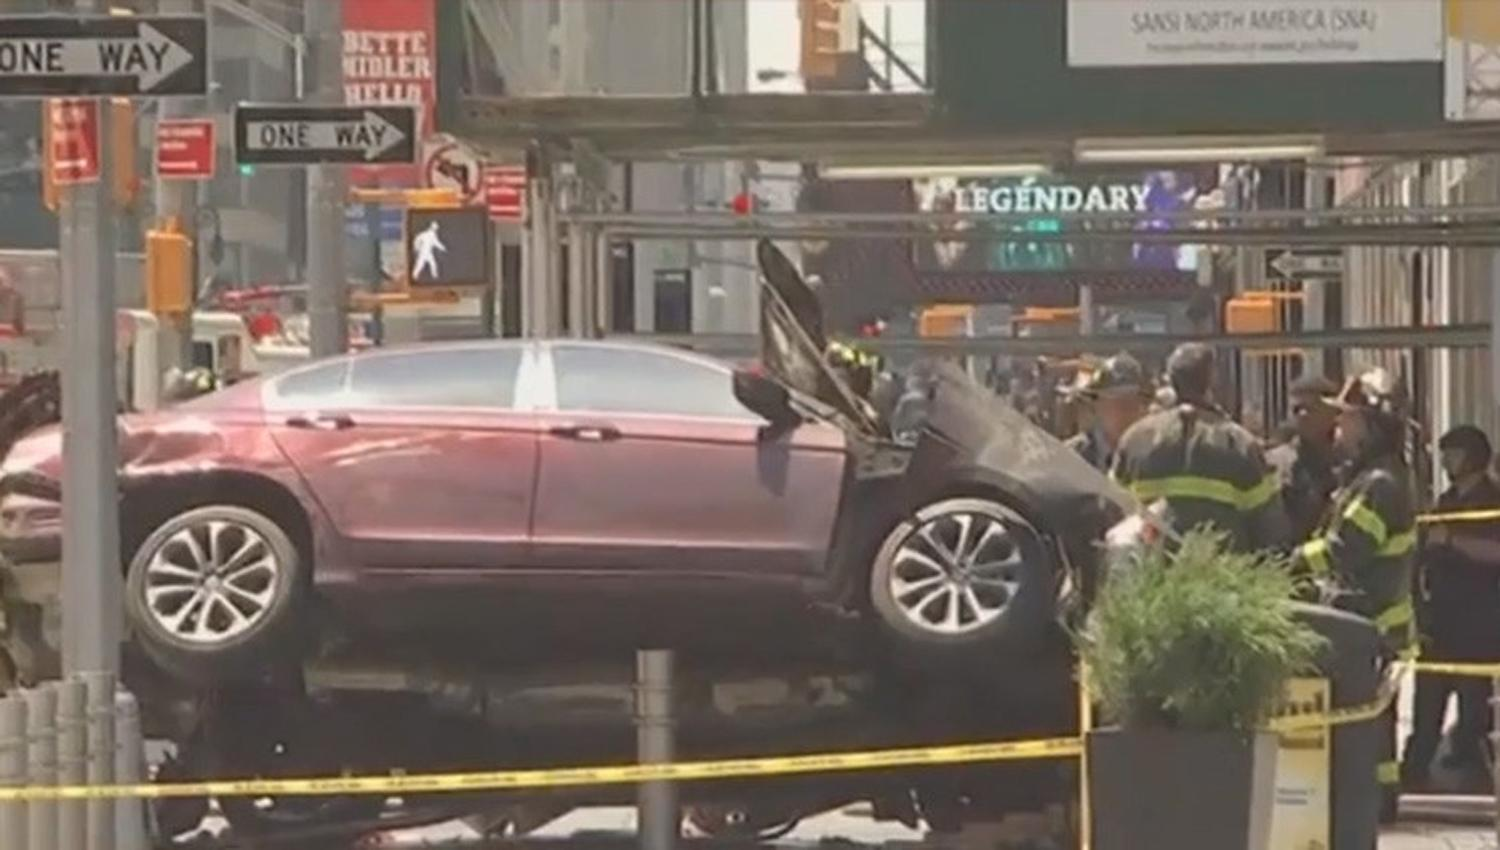 Confirman un muerto por atropello en Times Square